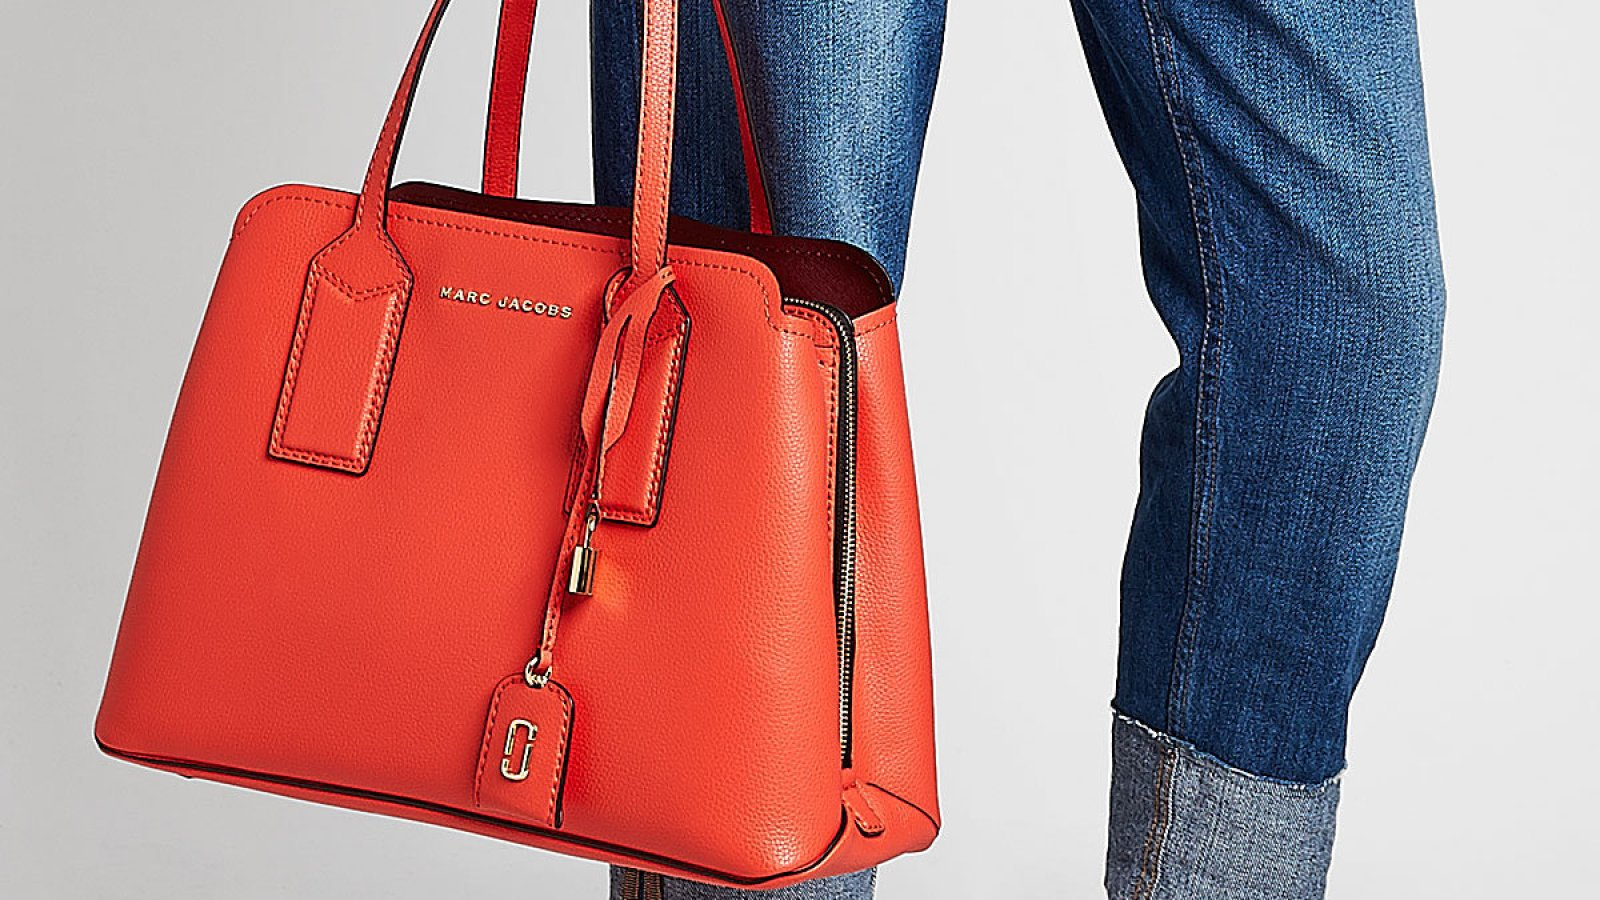 43d0a6216f0 Style Steal! Scoop Up This Sleek Marc Jacobs Tote Bag Before It Sells Out!